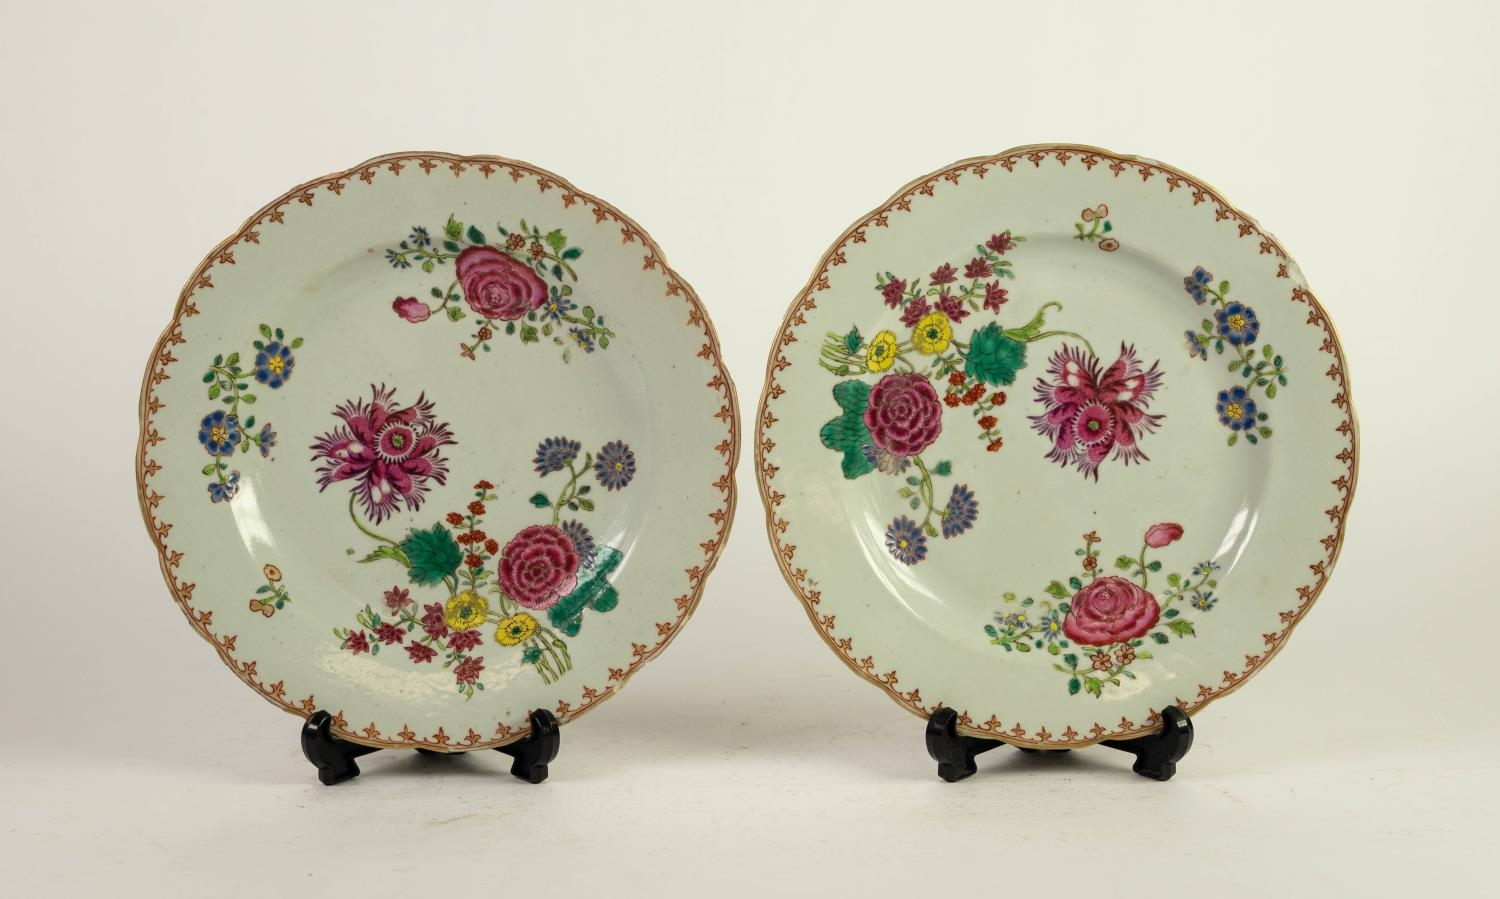 PAIR OF EIGHTEENTH CENTURY CHINESE FAMILLE ROSE PORCELAIN PLATES, each painted in colours with